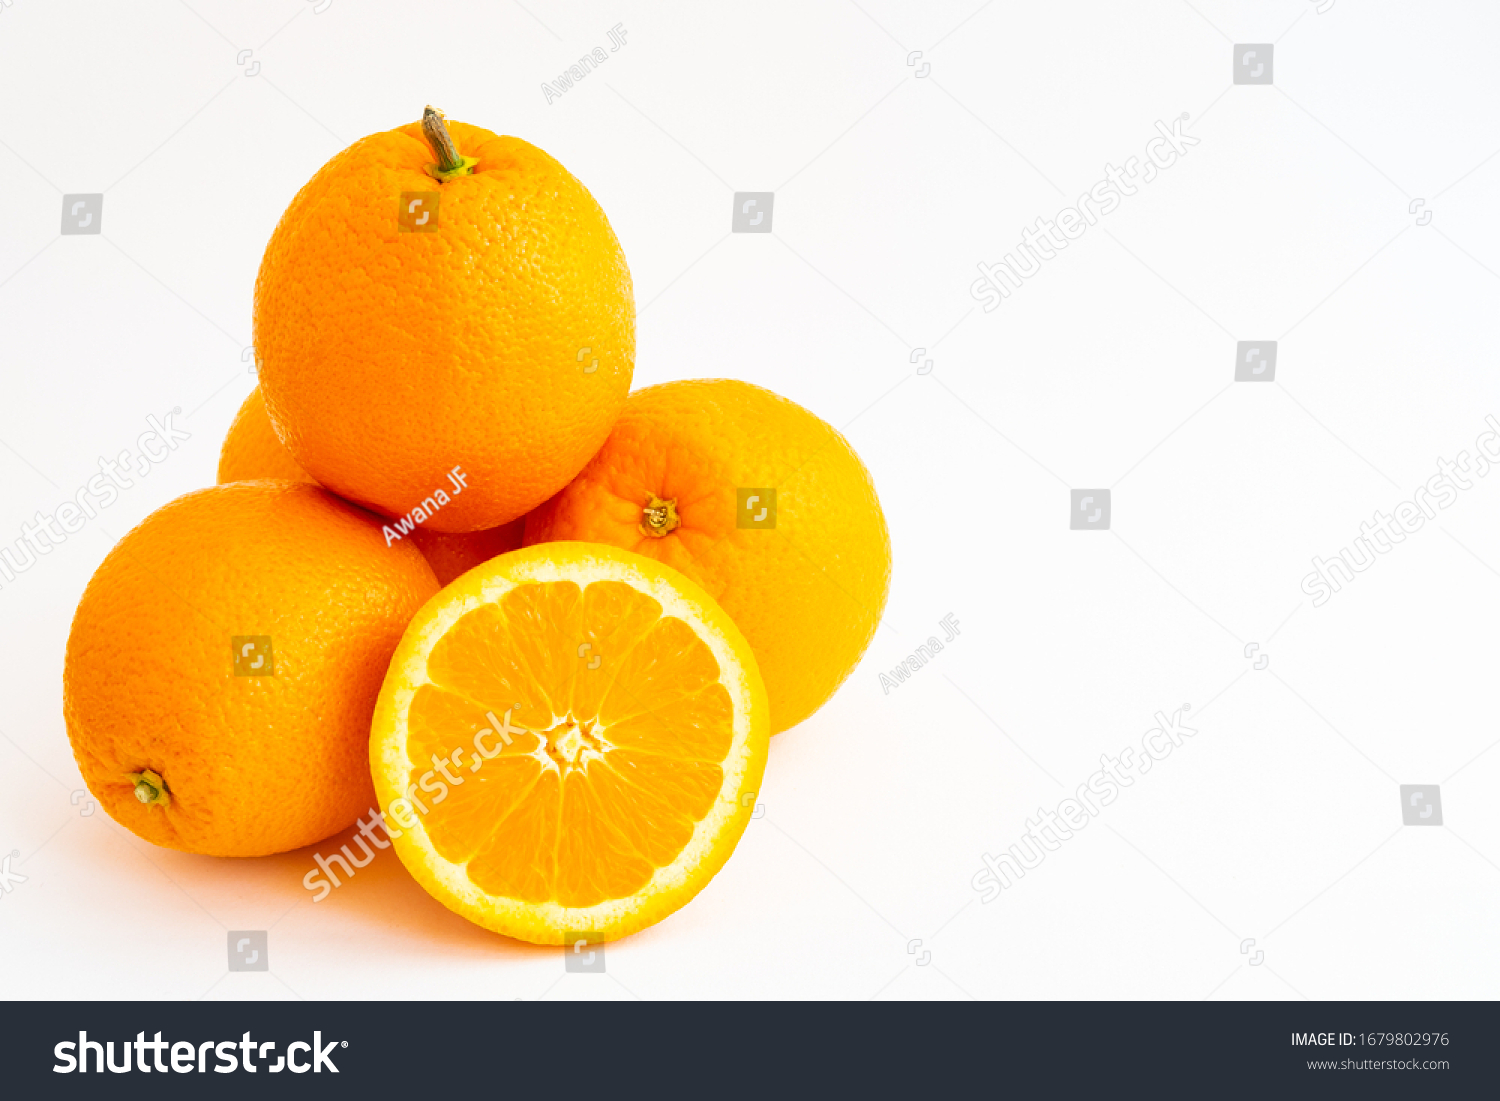 stock-photo-four-oranges-stacked-and-an-